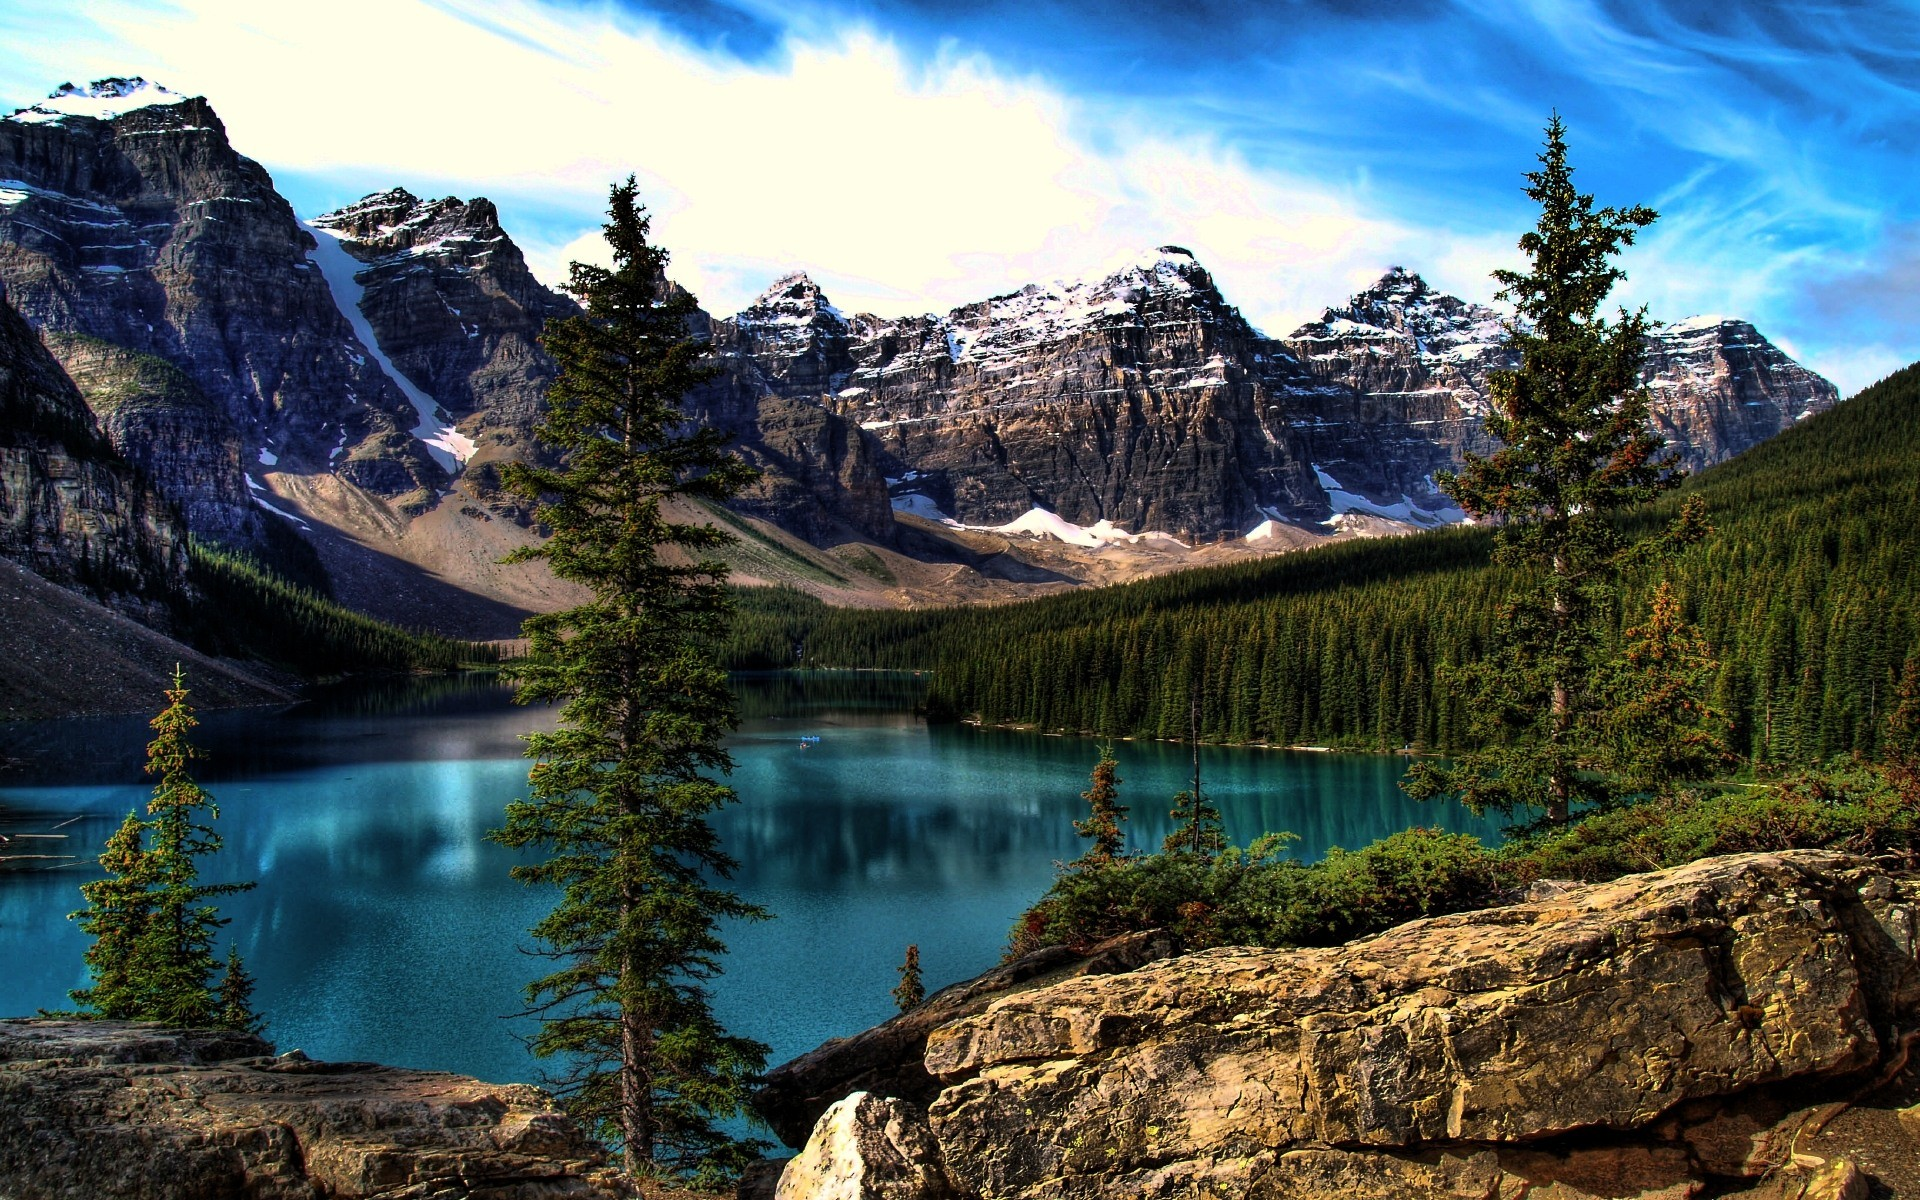 Lake Scenes Wallpaper For Computer 48 Images